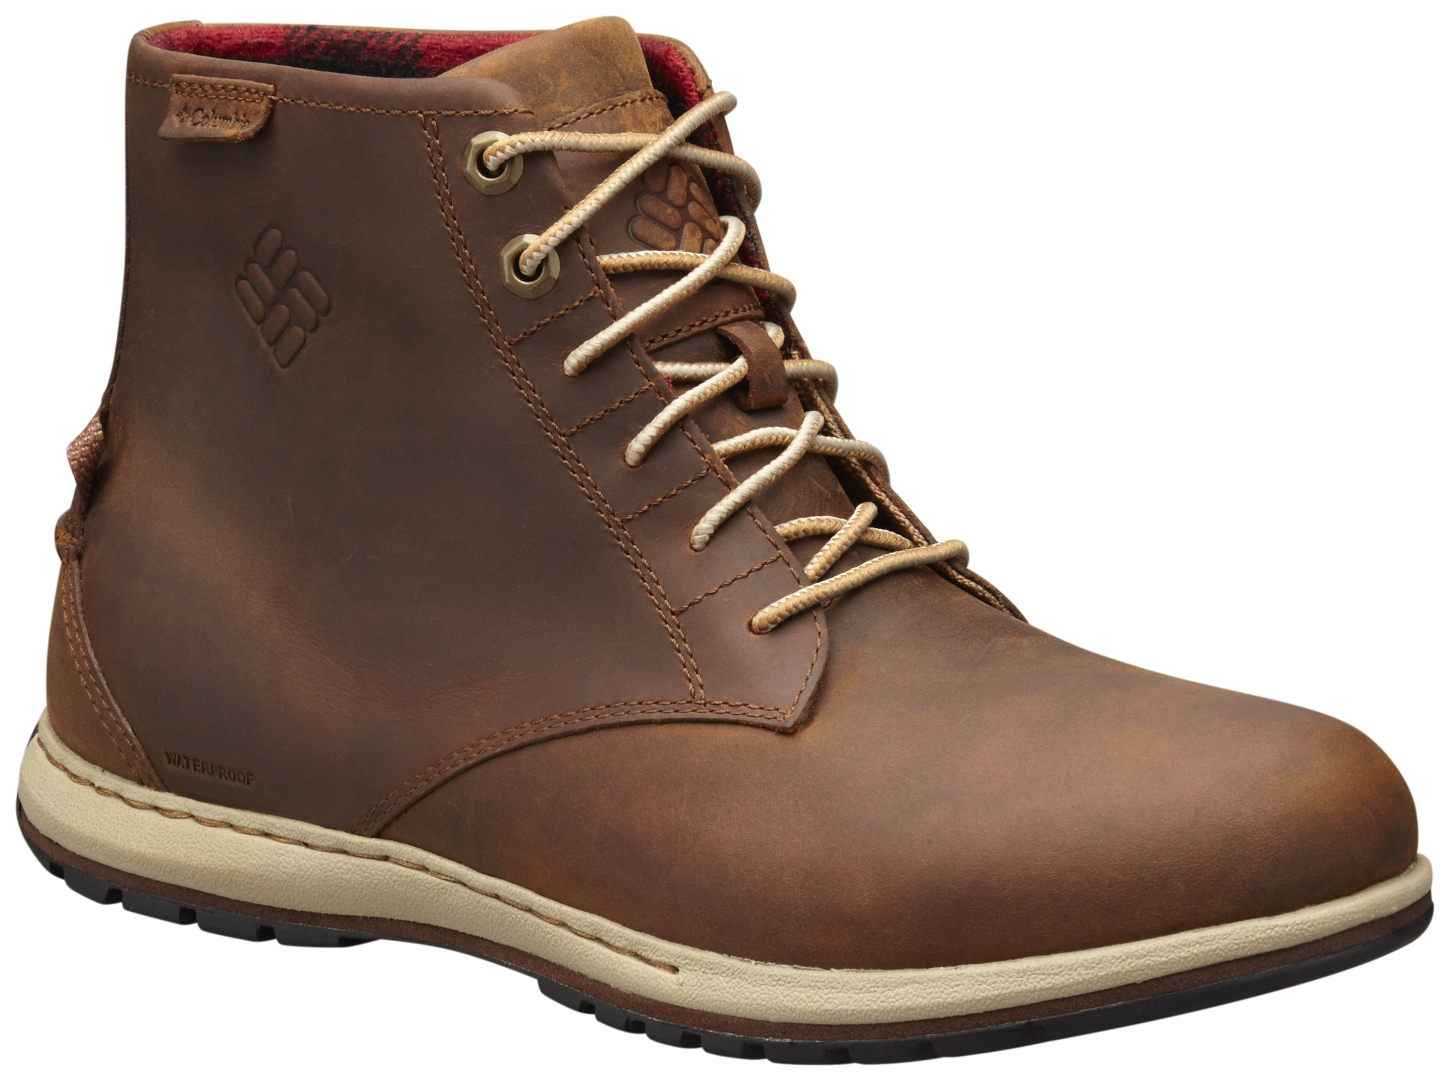 Columbia Men's Davenport Six Waterproof Leather Boots Elk, Buro-30